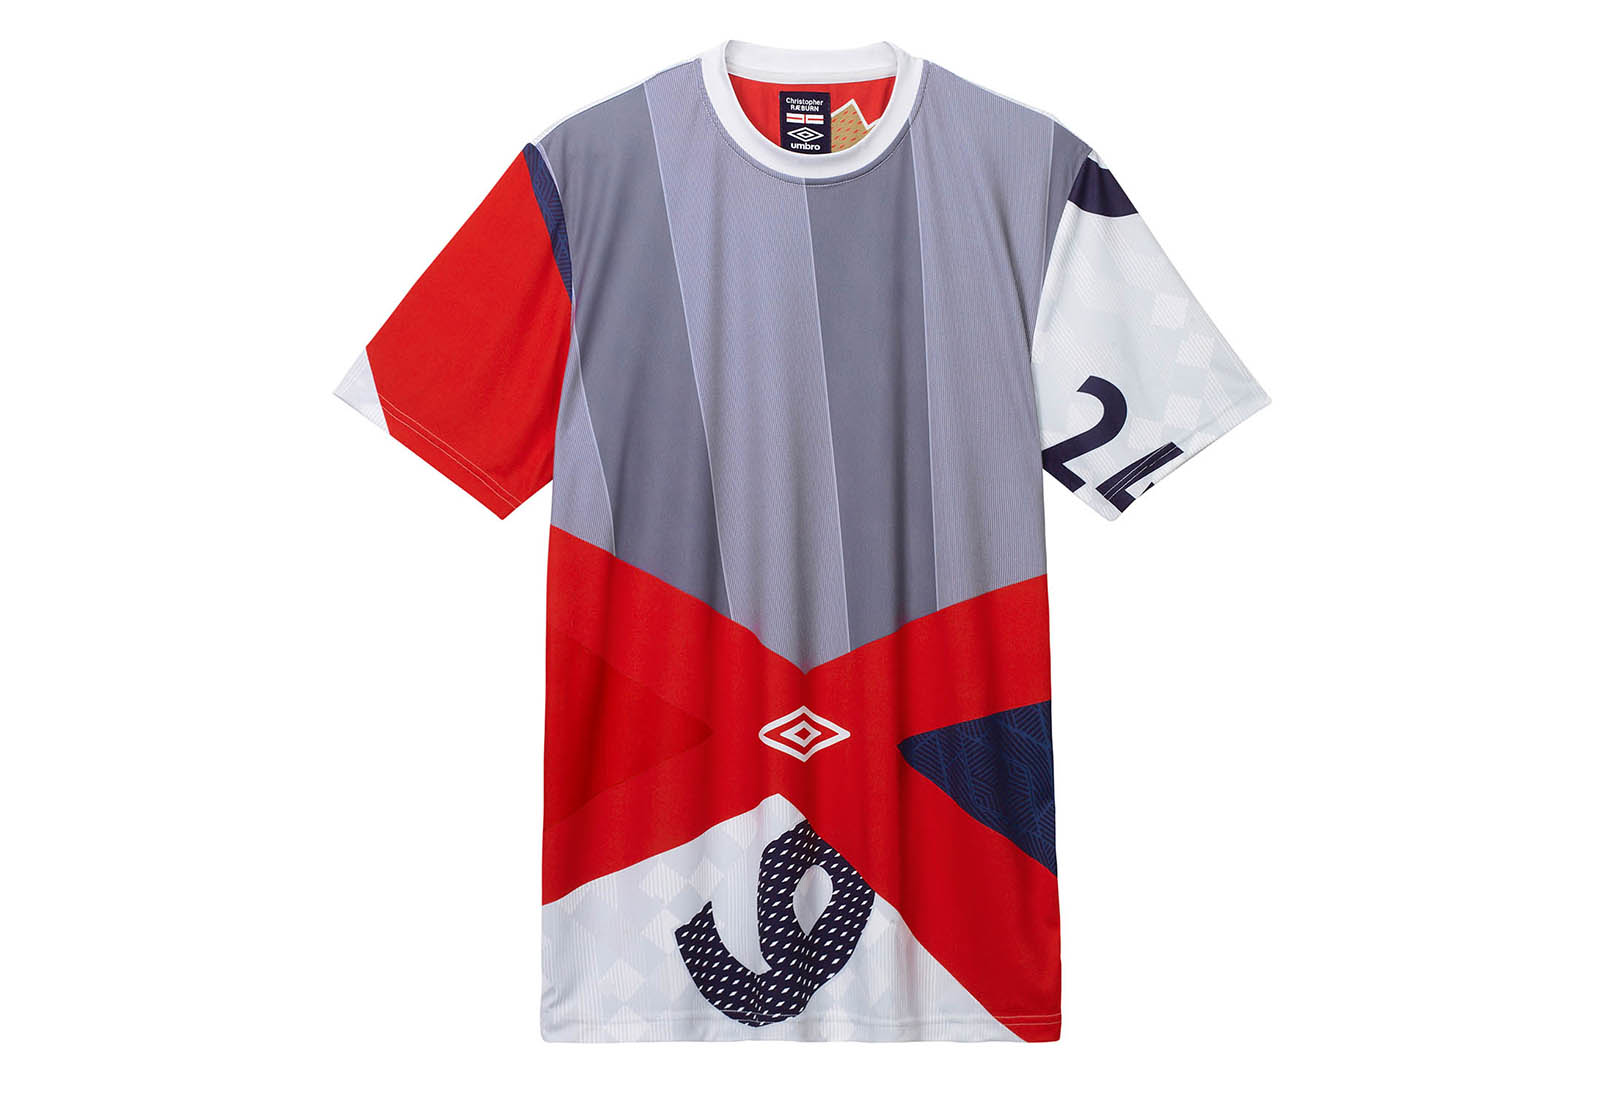 christopher-raeburn-umbro-collaboration-soccerbible-full-collection_0002_umbro-x-christopher-raeburn-remix-tee-red